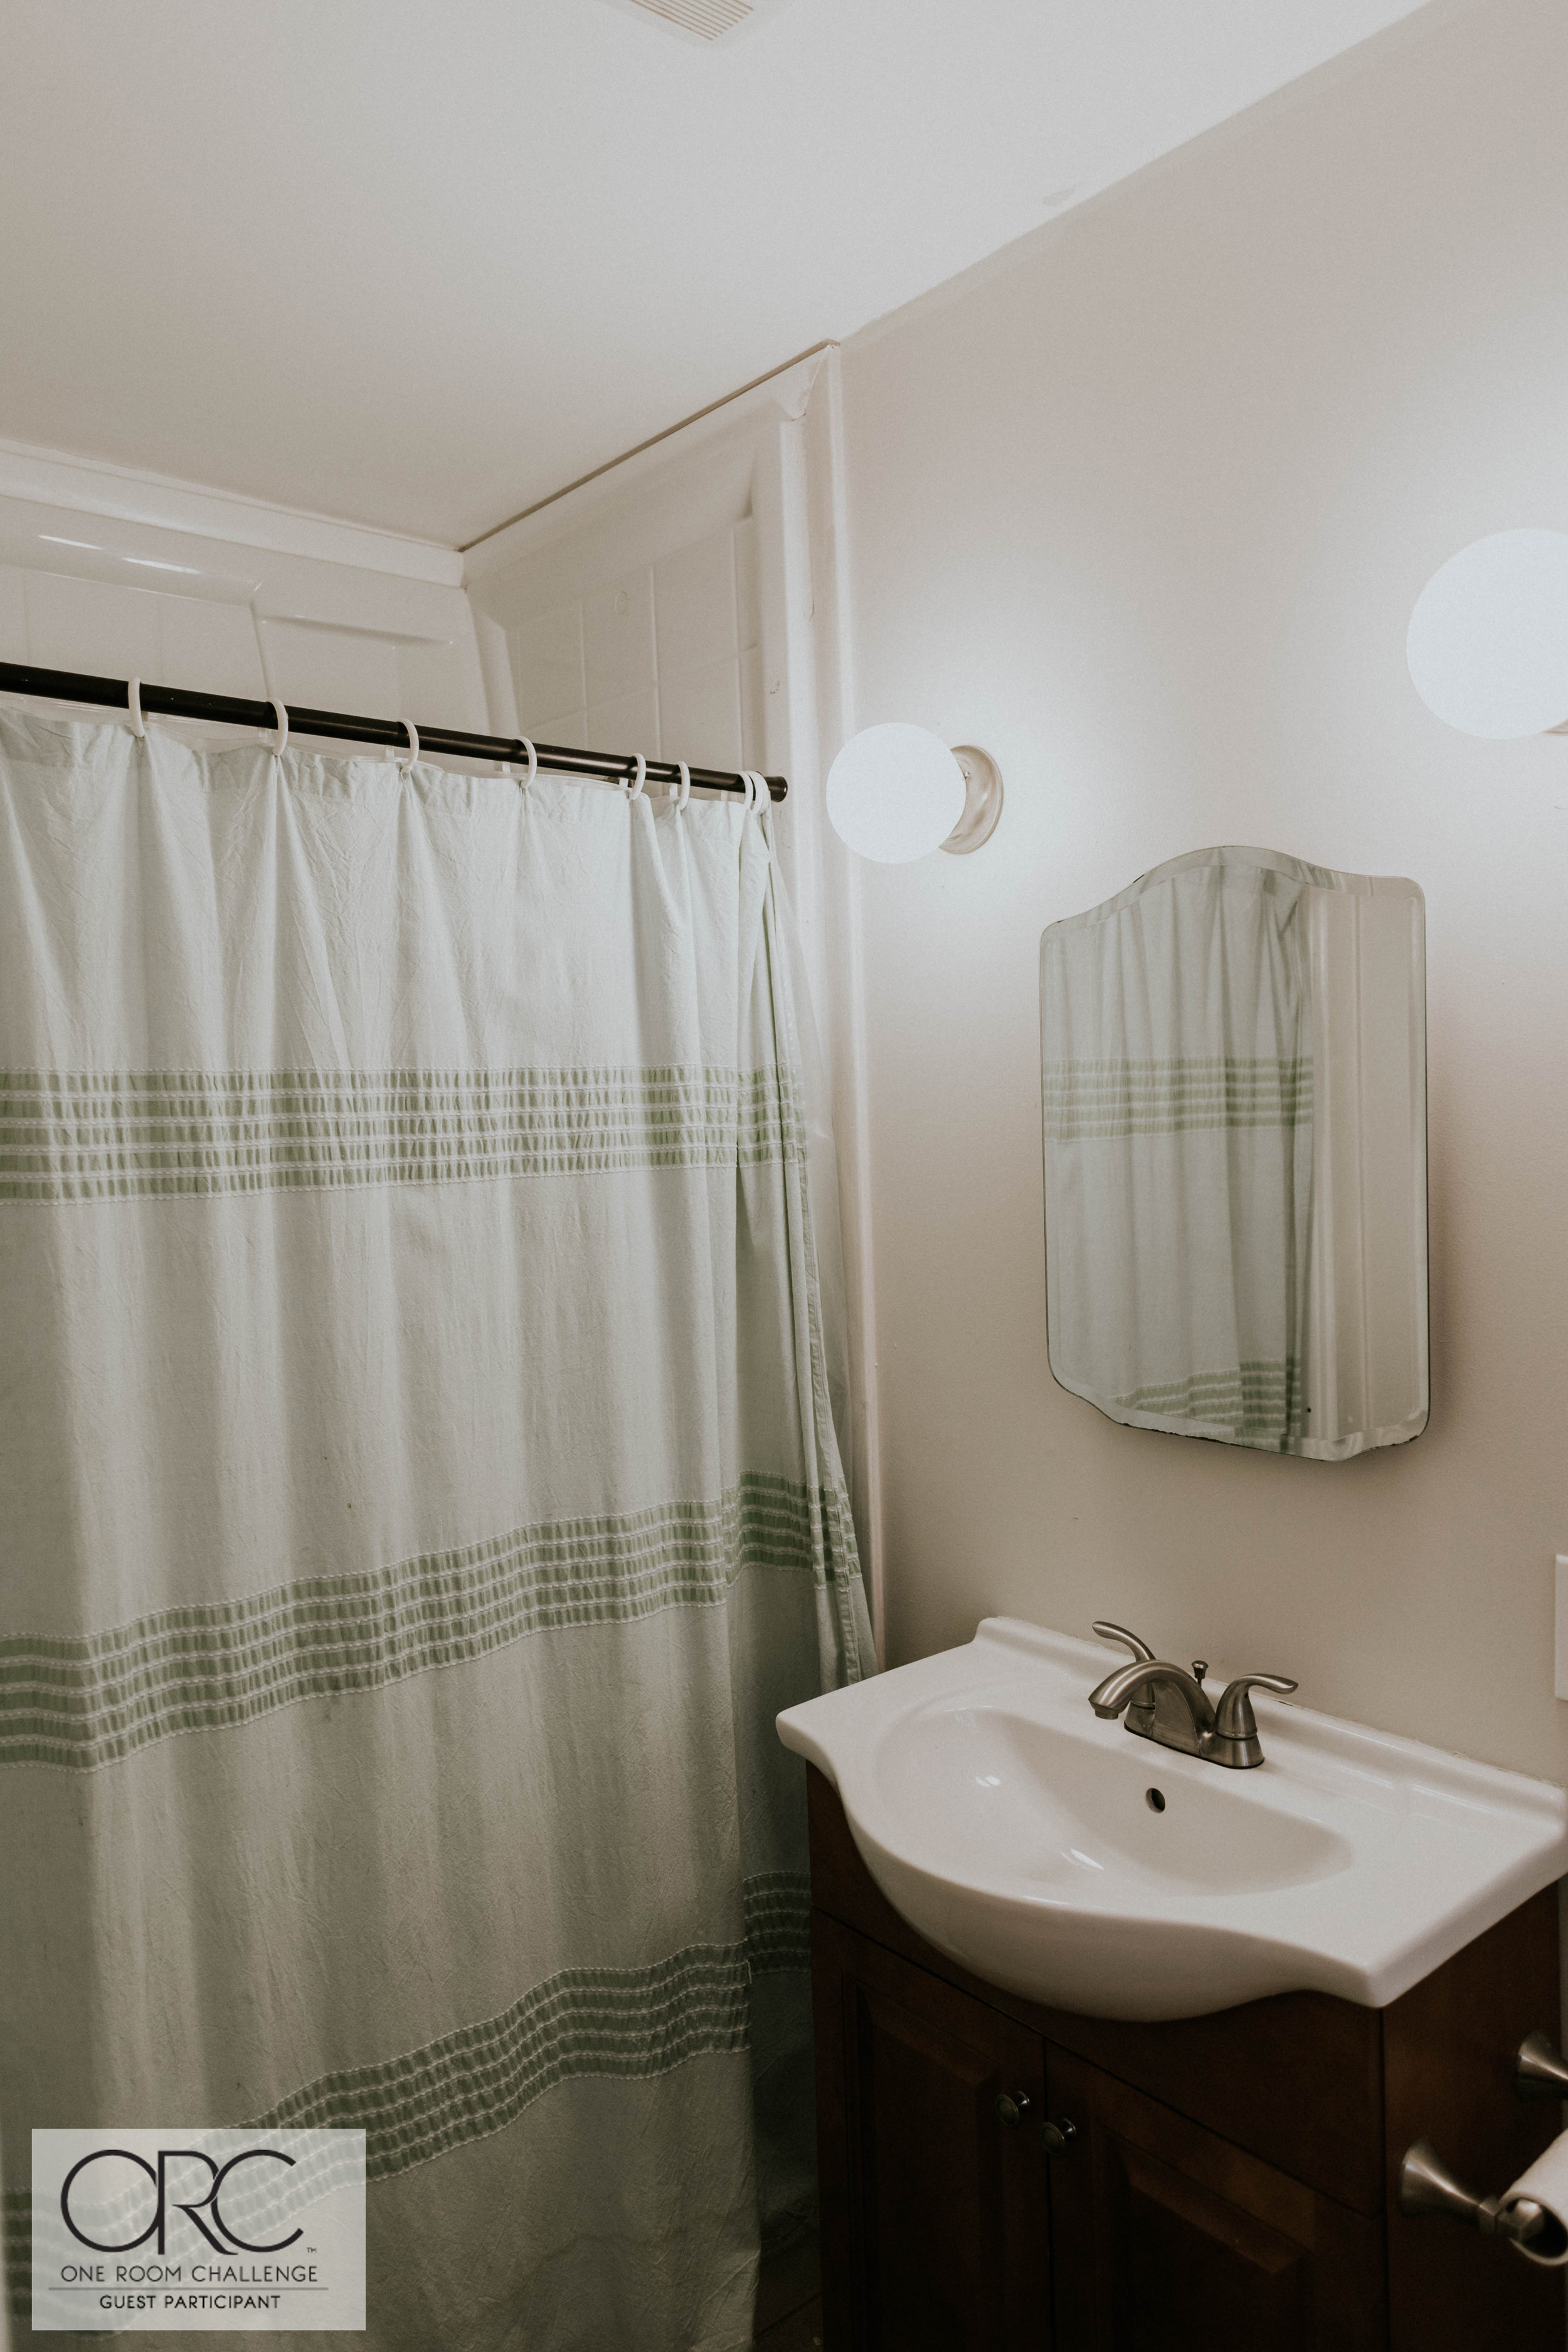 GUEST PARTICIPANT ONE ROOM CHALLENGE MASTER BATHROOM  1 (1 of 1).jpg